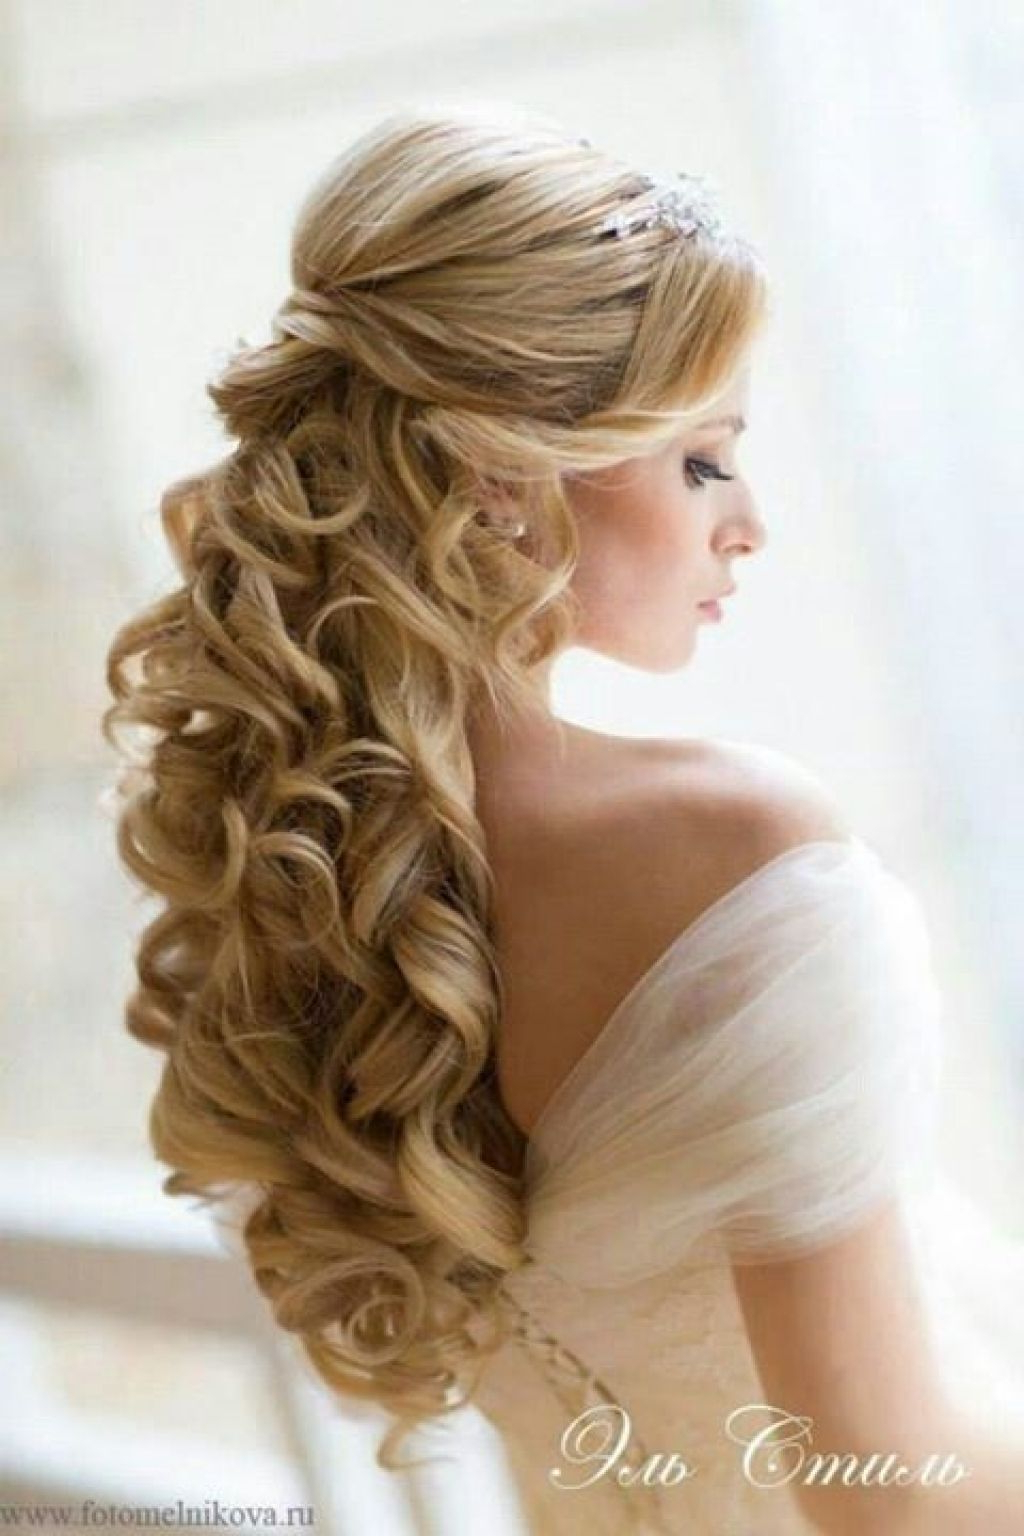 Wedding Hairstyle : Half Up Down Do Braid Curls Wedding Hairstyles Inside Current Side Curls Bridal Hairstyles With Tiara And Lace Veil (View 16 of 20)